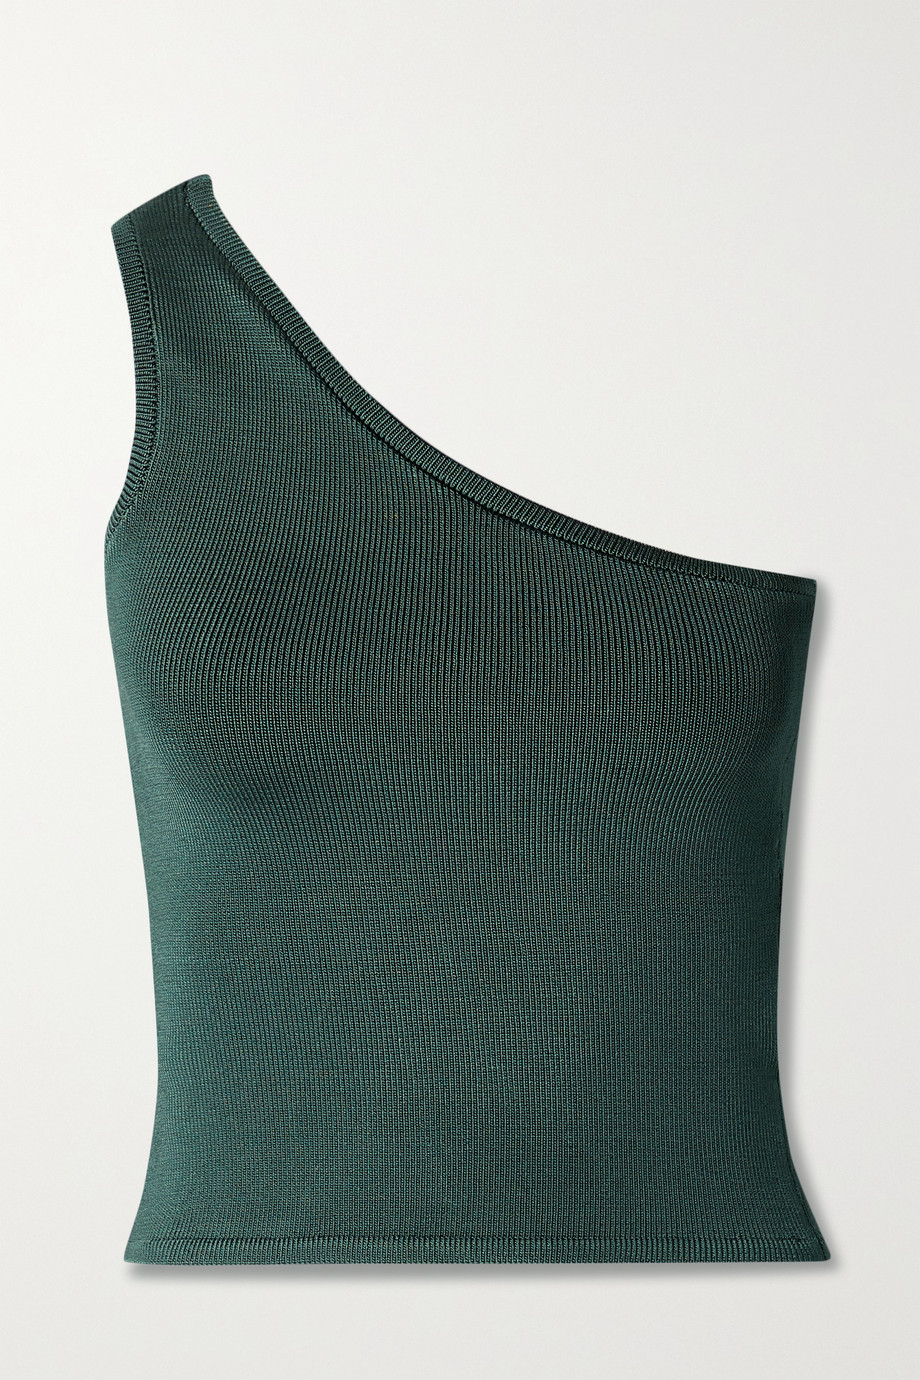 CALLE DEL MAR + NET SUSTAIN cropped one-shoulder stretch-knit top